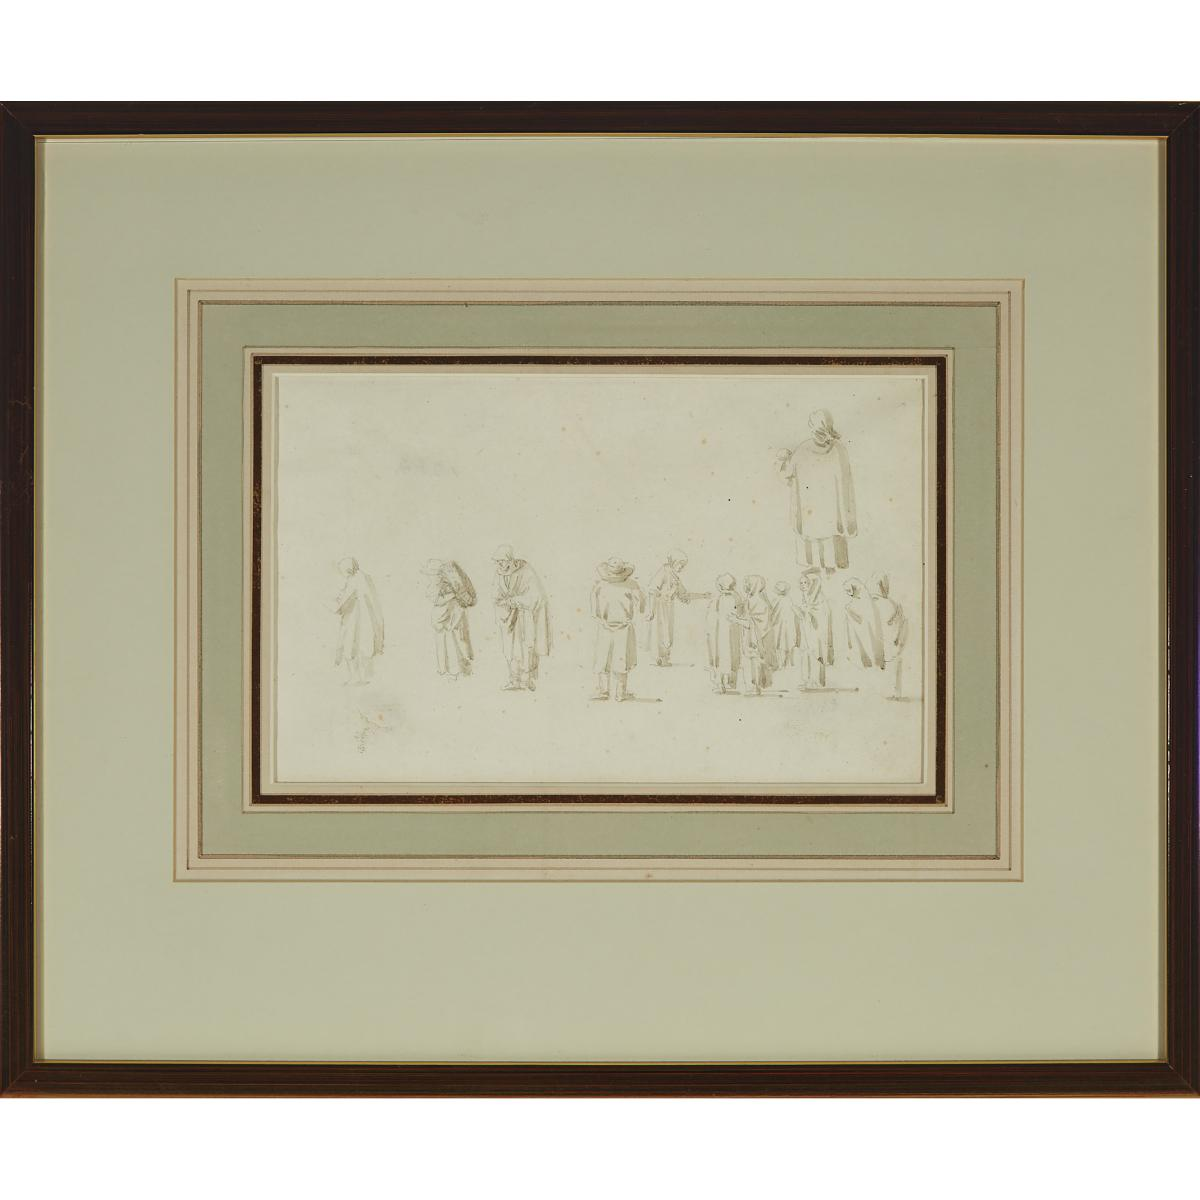 Collector's Group of Three Drawings, Sheet 8.25 x 6.5 in — 21 x 16.5 cm; 5.5 x 8.5 in — 14 x 21.6 cm - Image 5 of 9